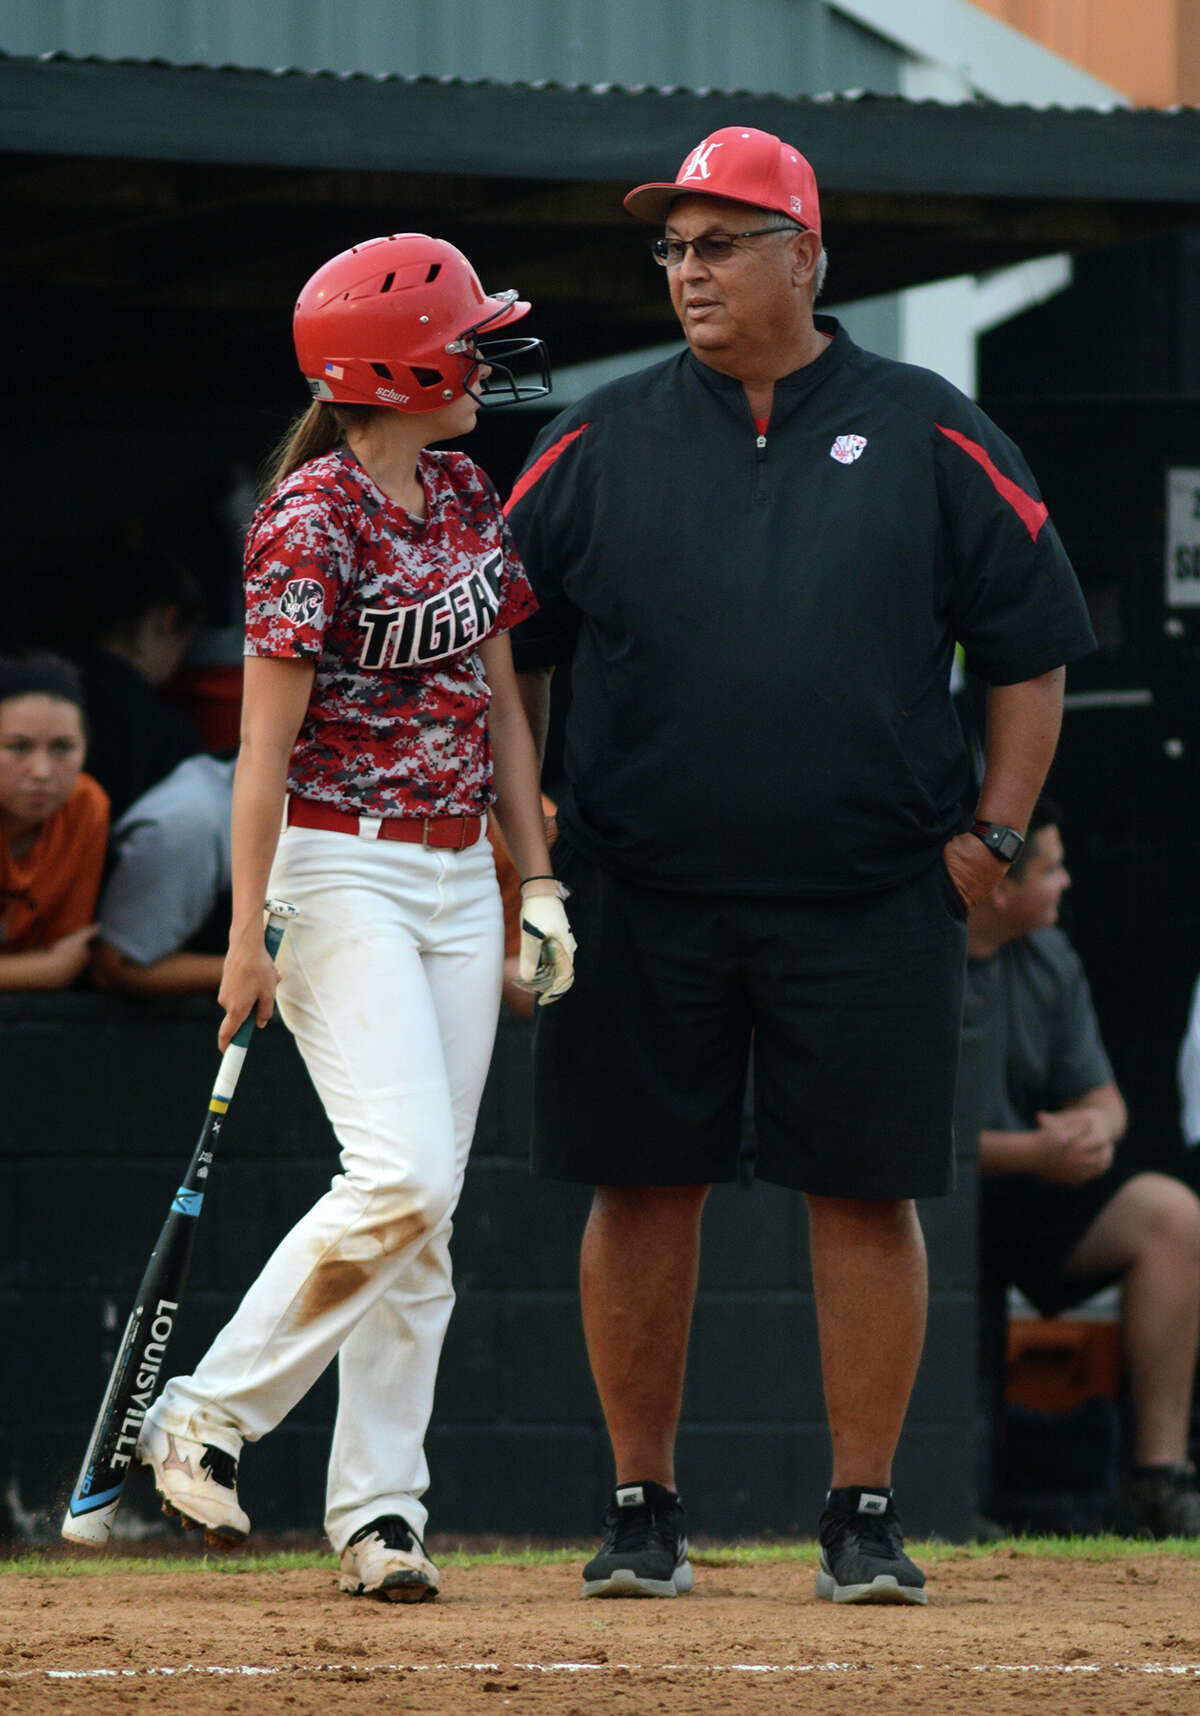 Katy Head Coach Kalum Haack, right, chats with junior shortstop Emily Hitt before her at-bat against Alvin in the top of the 4th inning of game 2 of their Class 6A Regional Semifinal Softball Playoff series at Alvin High School on Friday, May 22, 2015. (Photo by Jerry Baker/Freelance)